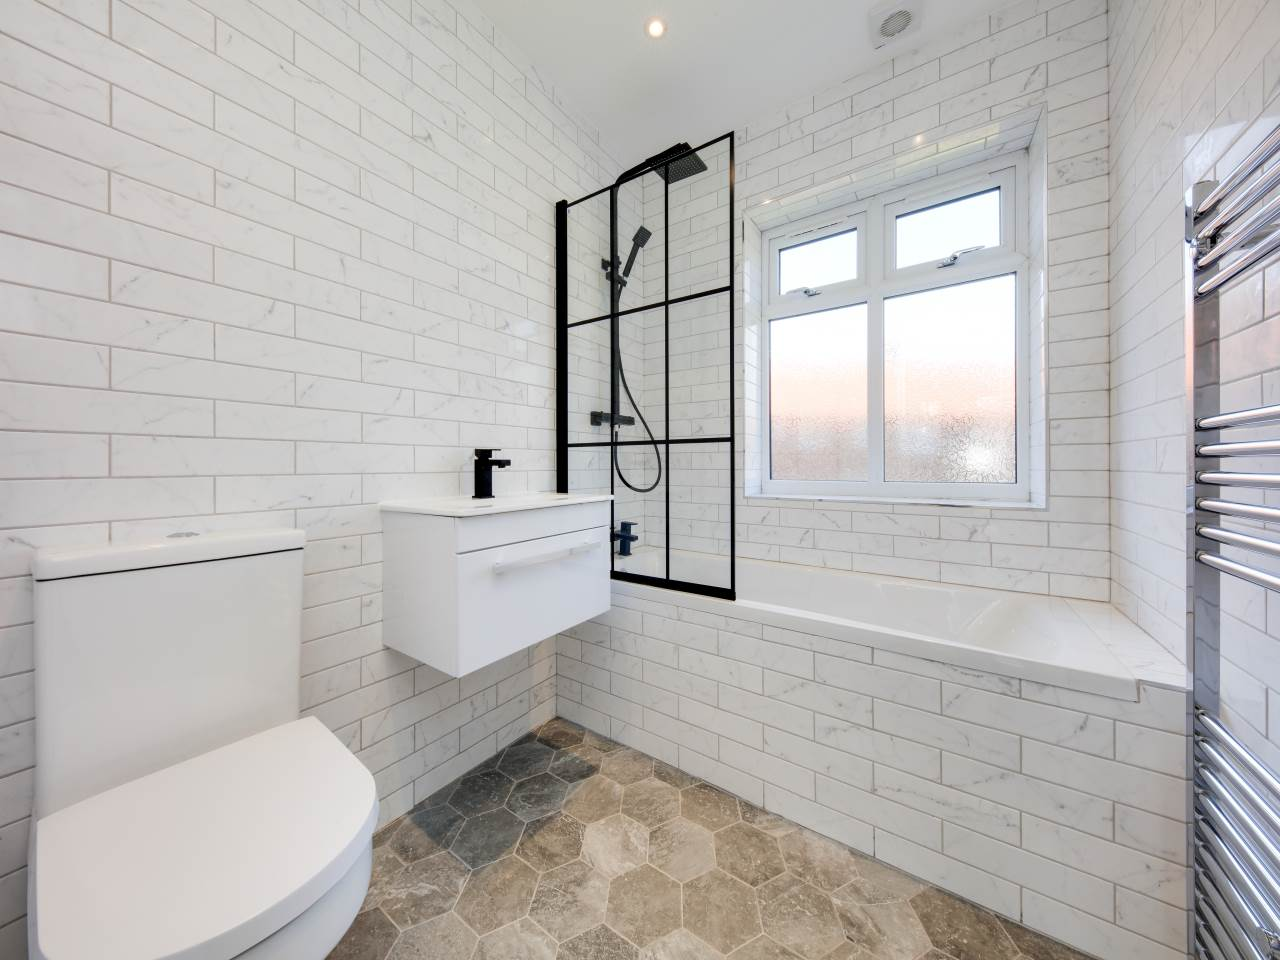 3 bed house for sale in Shernhall Street , Walthamstow   - Property Image 4